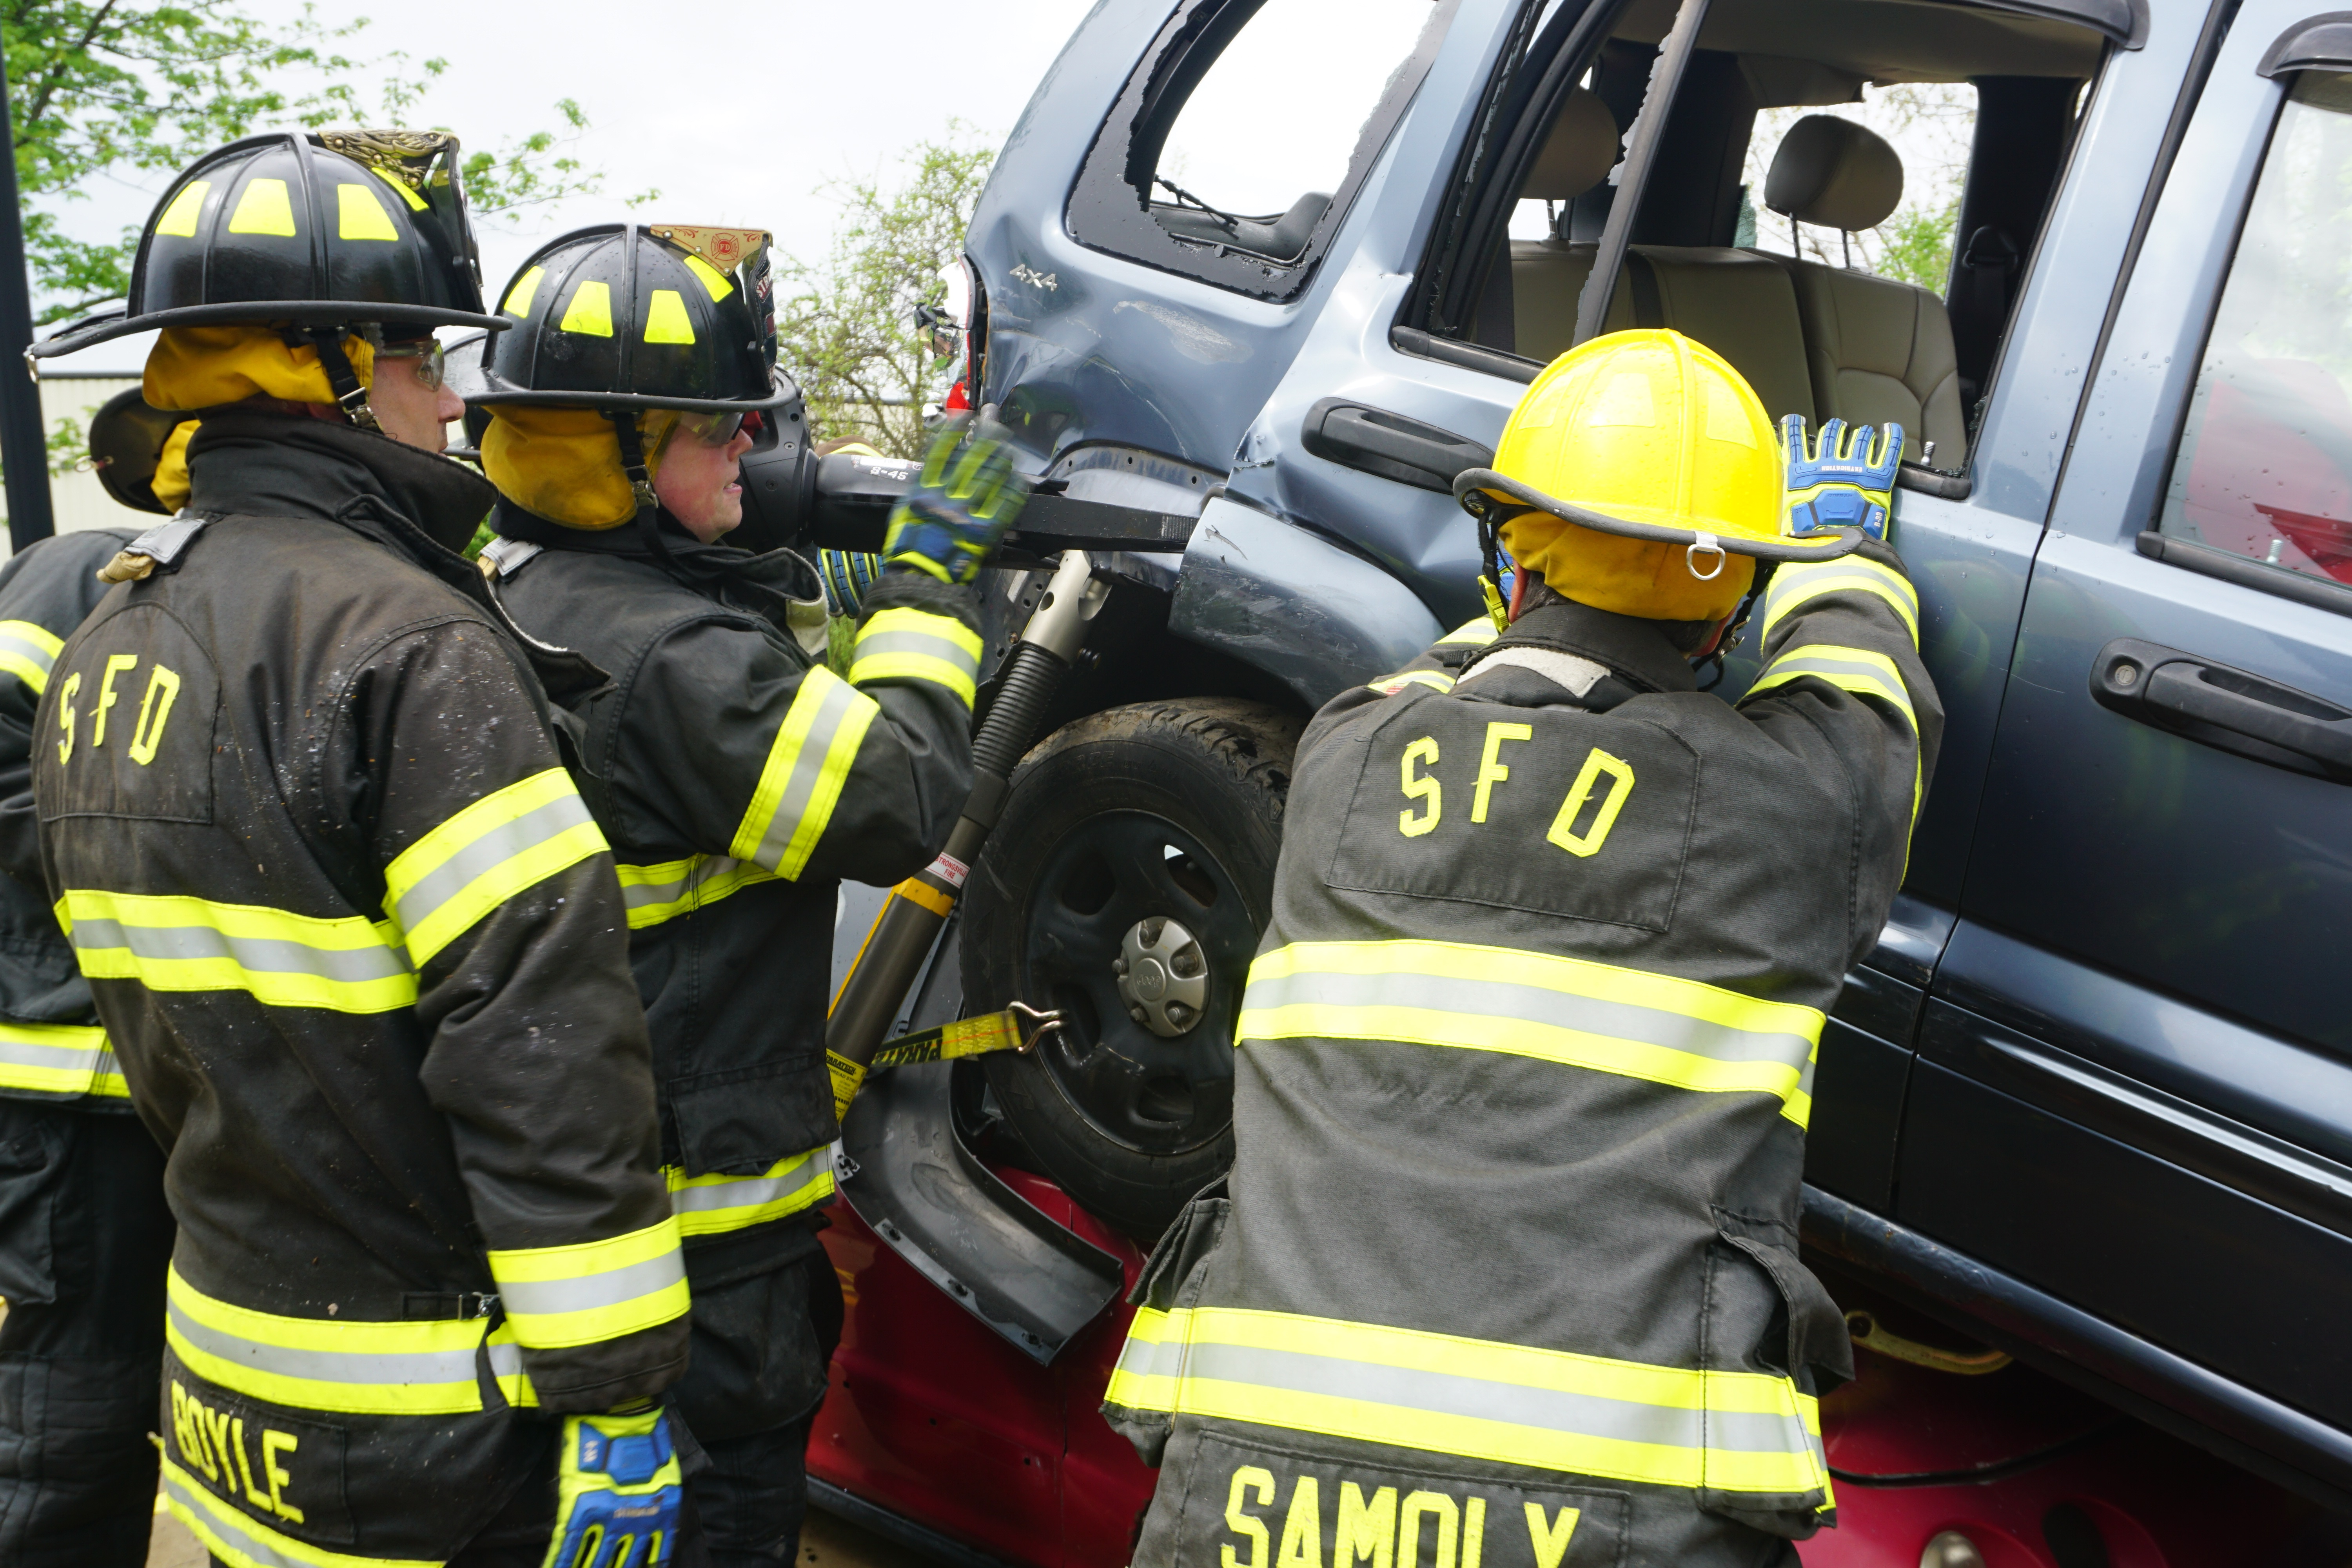 Firefighters Train on Extrication Equipment